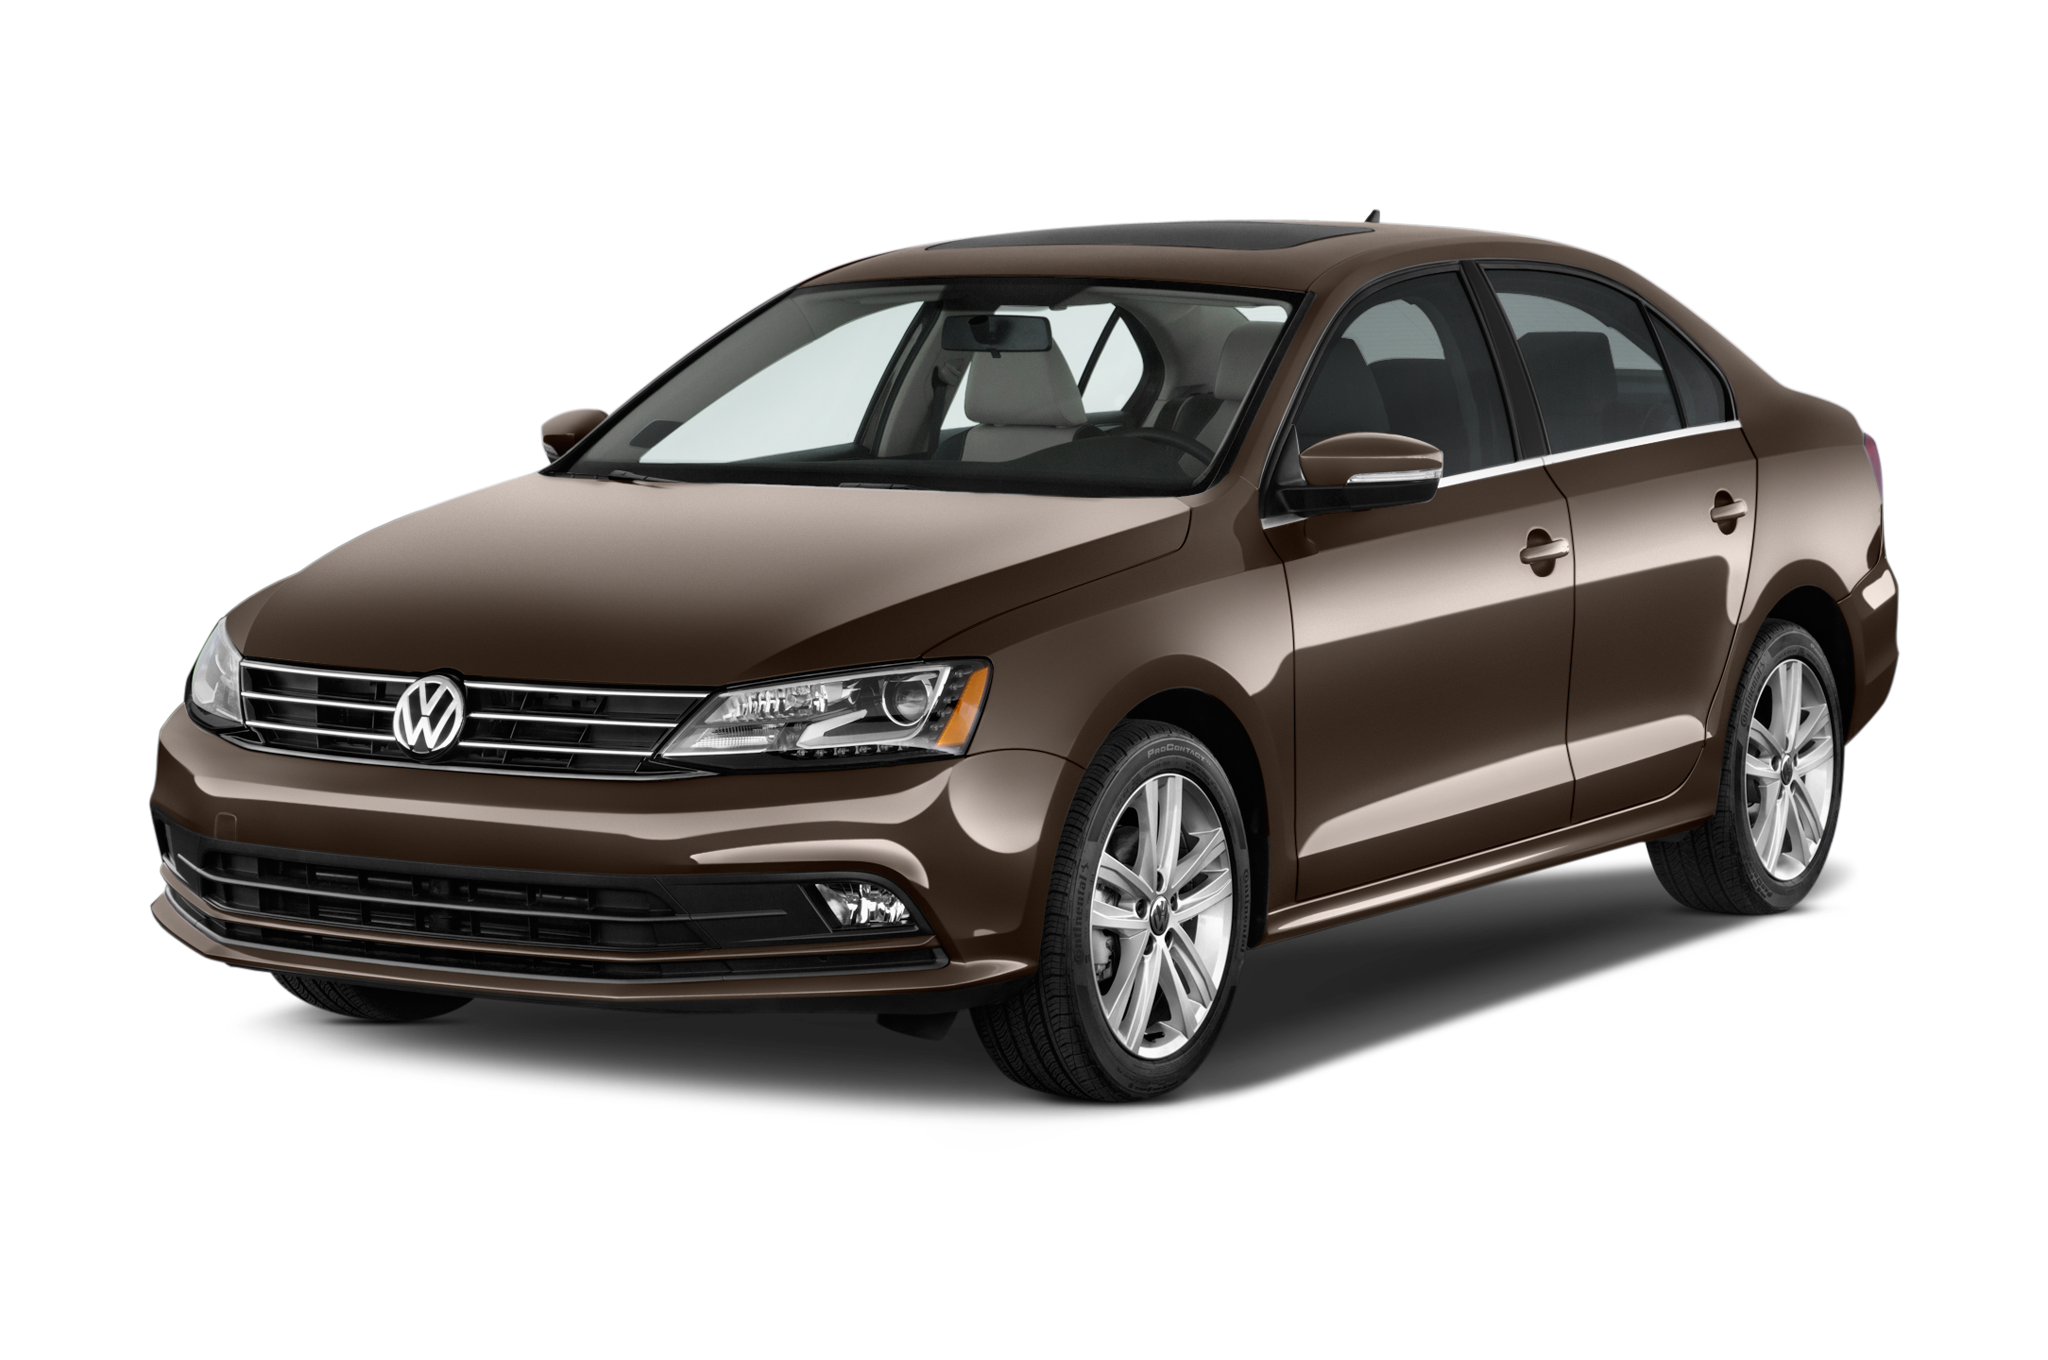 2016 Volkswagen Jetta on chevy fuel pump wiring diagram